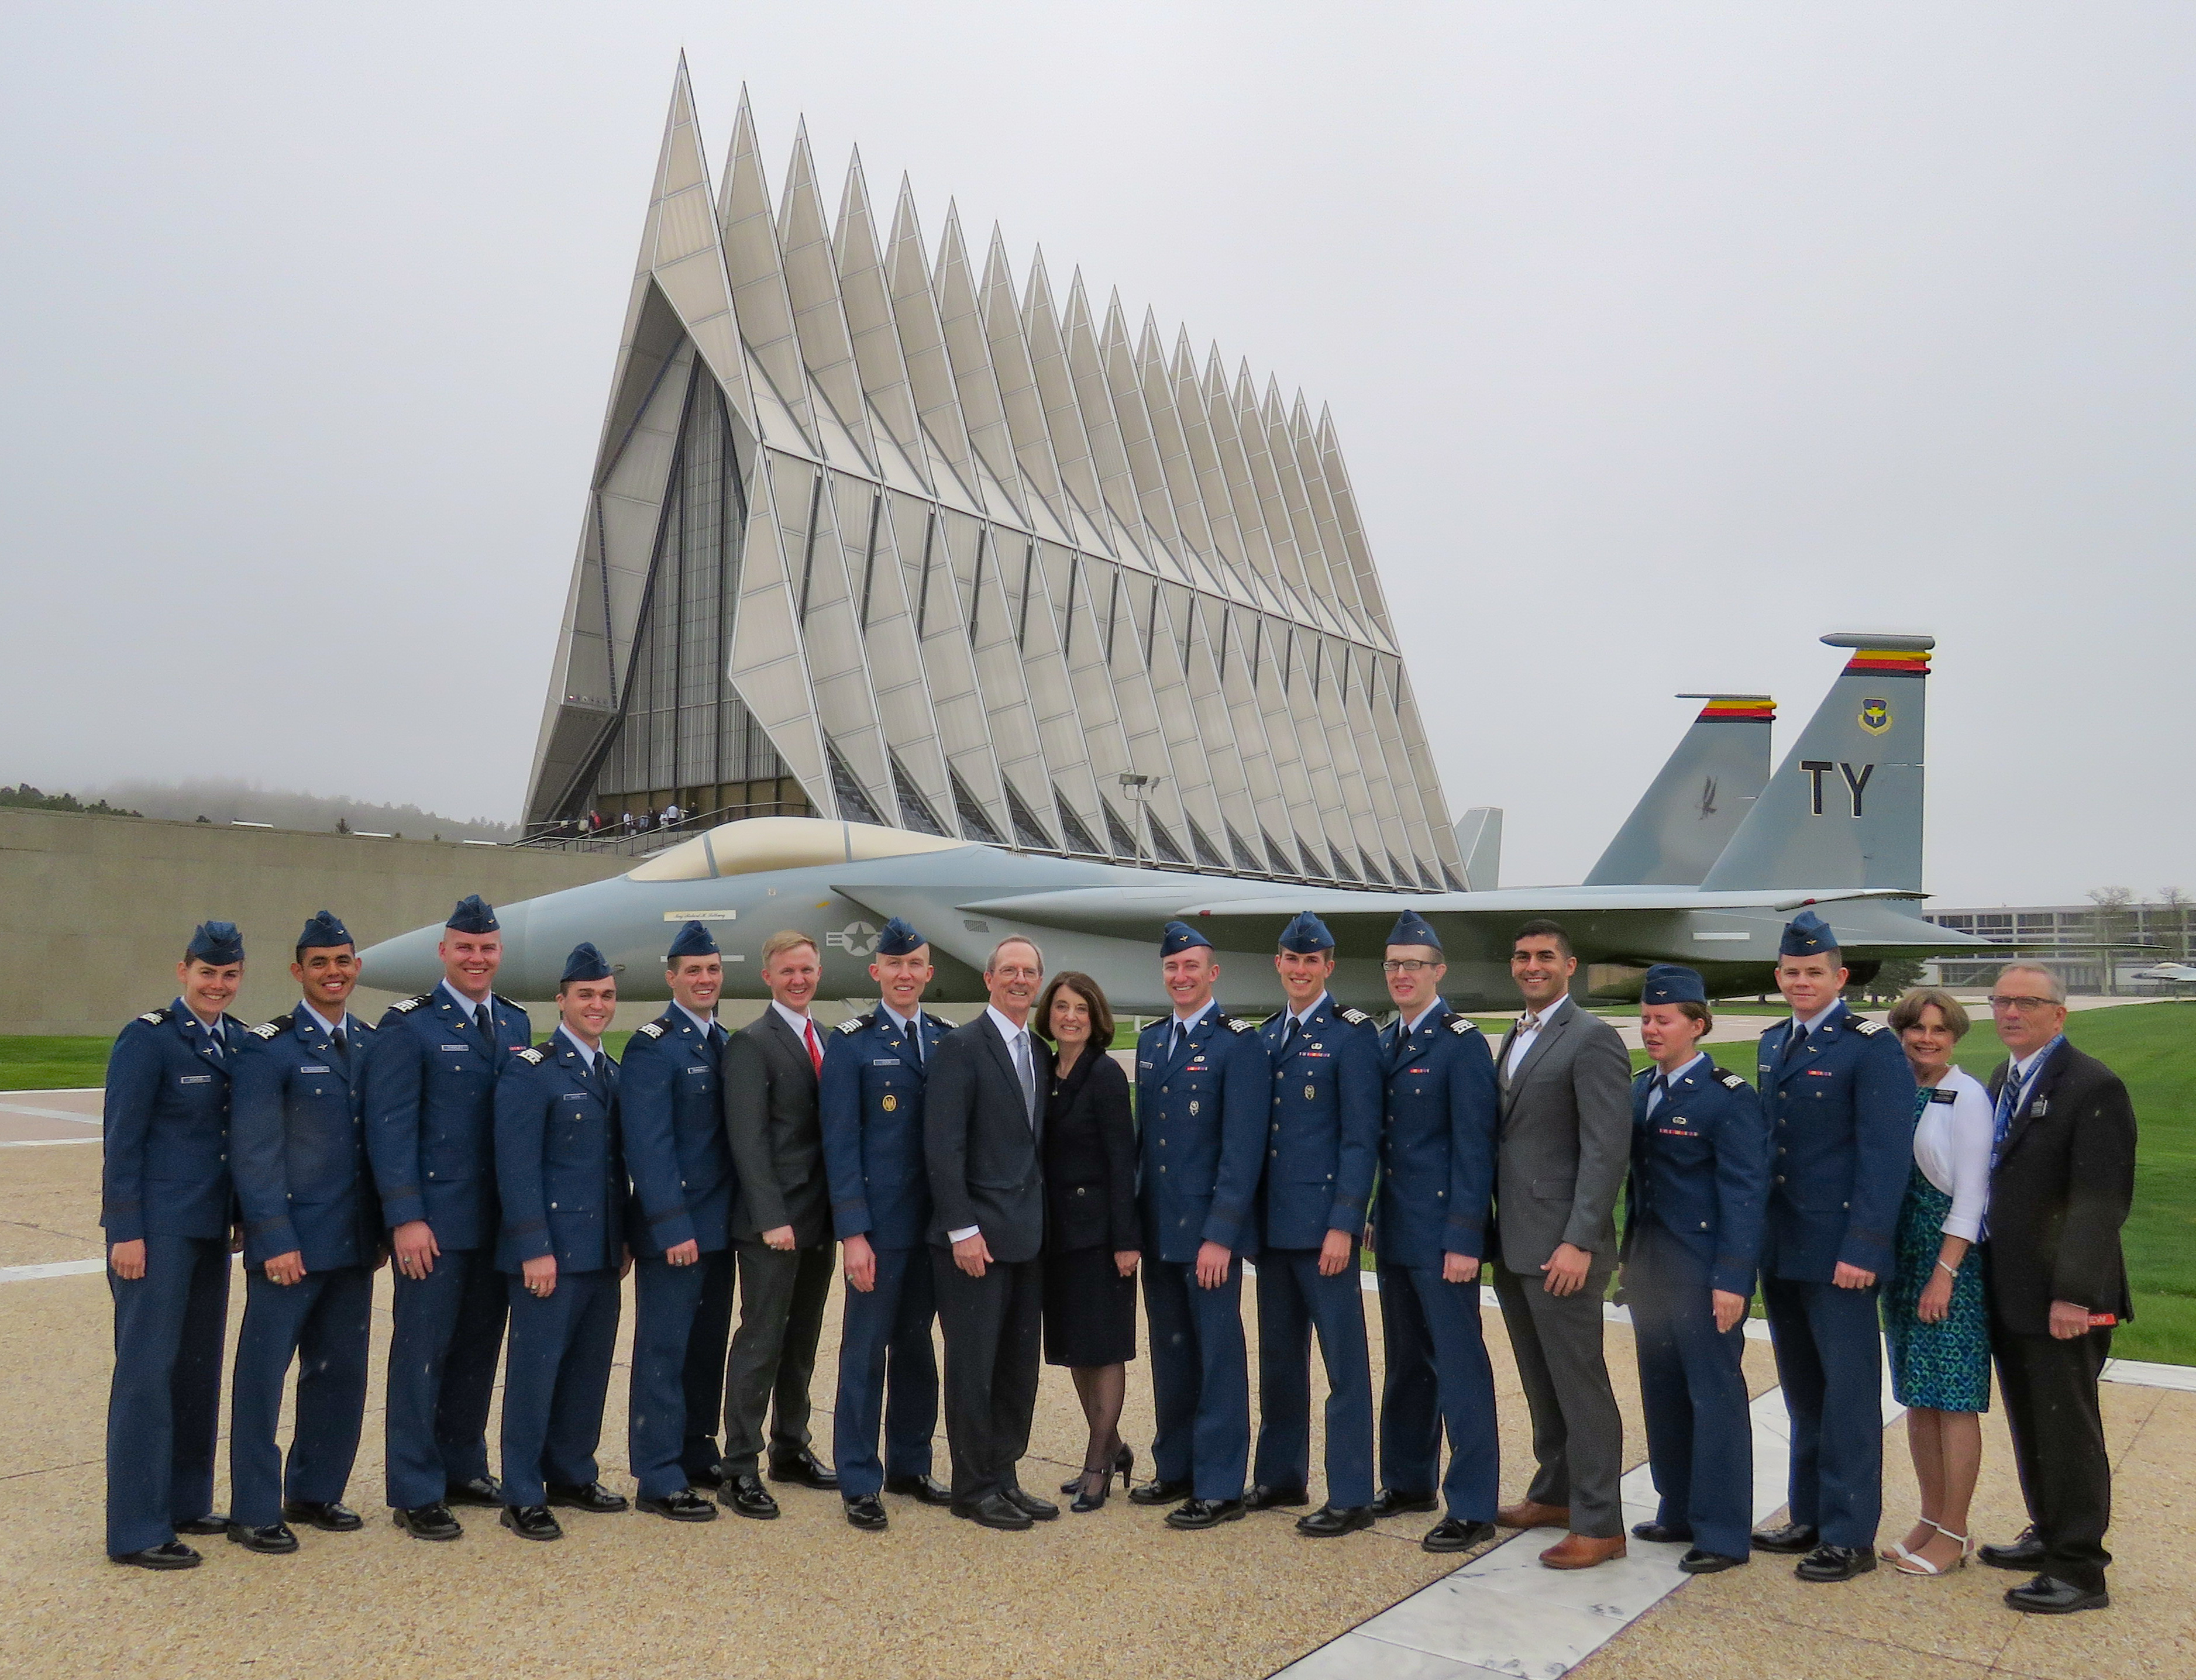 The drizzle doesn't dampen the spirits of seniors from the graduating class of 2018 who stand with Brother Tad R. Callister and Sister Kathryn S. Callister and Brother and Sister Lee, LDS Distinctive Religious Group Leaders at USAFA, in front of the historic chapel.